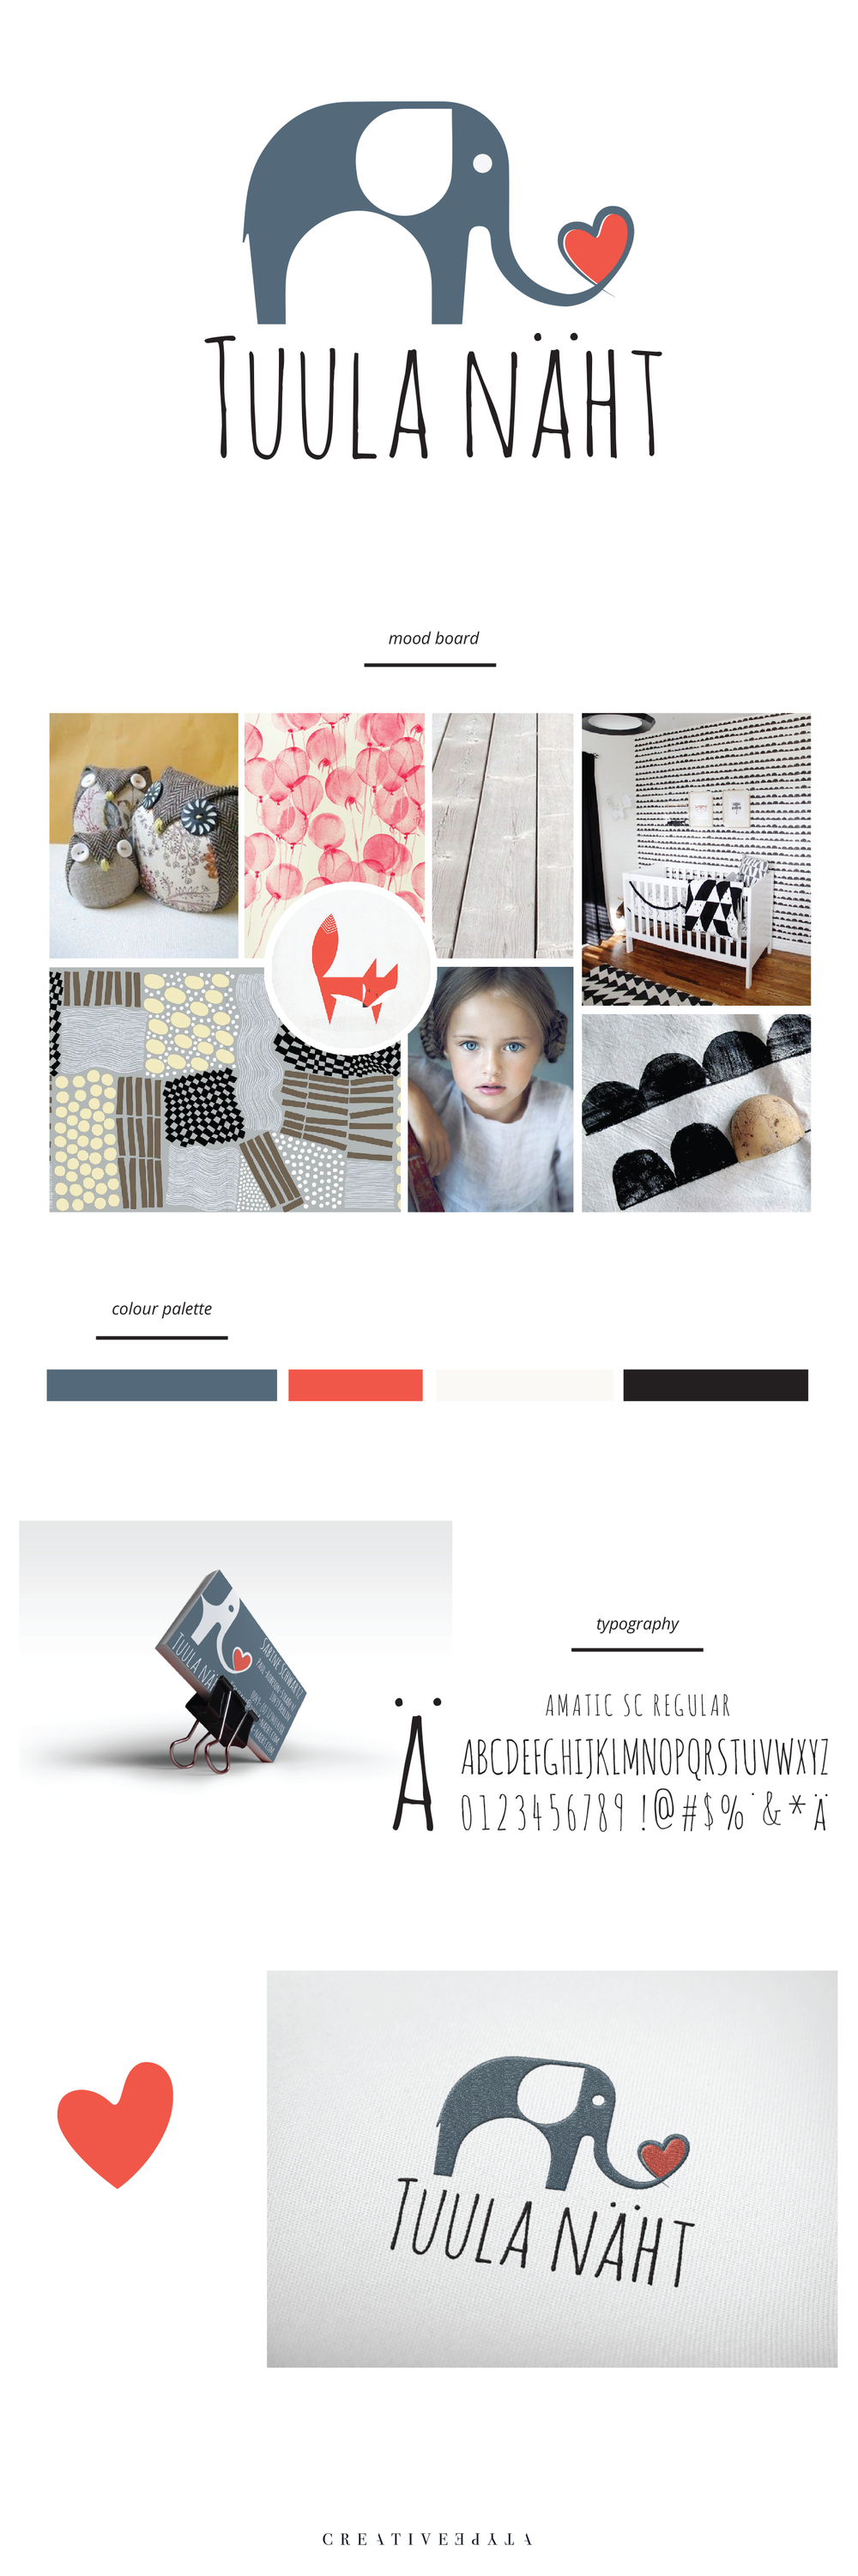 Tuula Naht Brand Board | Identity and Collateral by Creative Type A